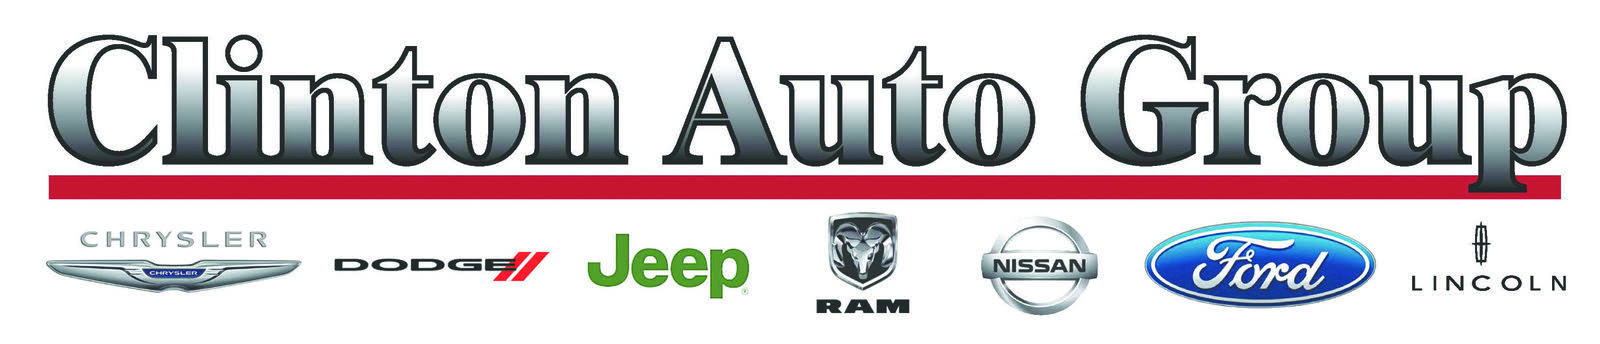 Cedar Rapids Car Dealers >> Clinton Auto Group - Clinton, IA: Read Consumer reviews, Browse Used and New Cars for Sale